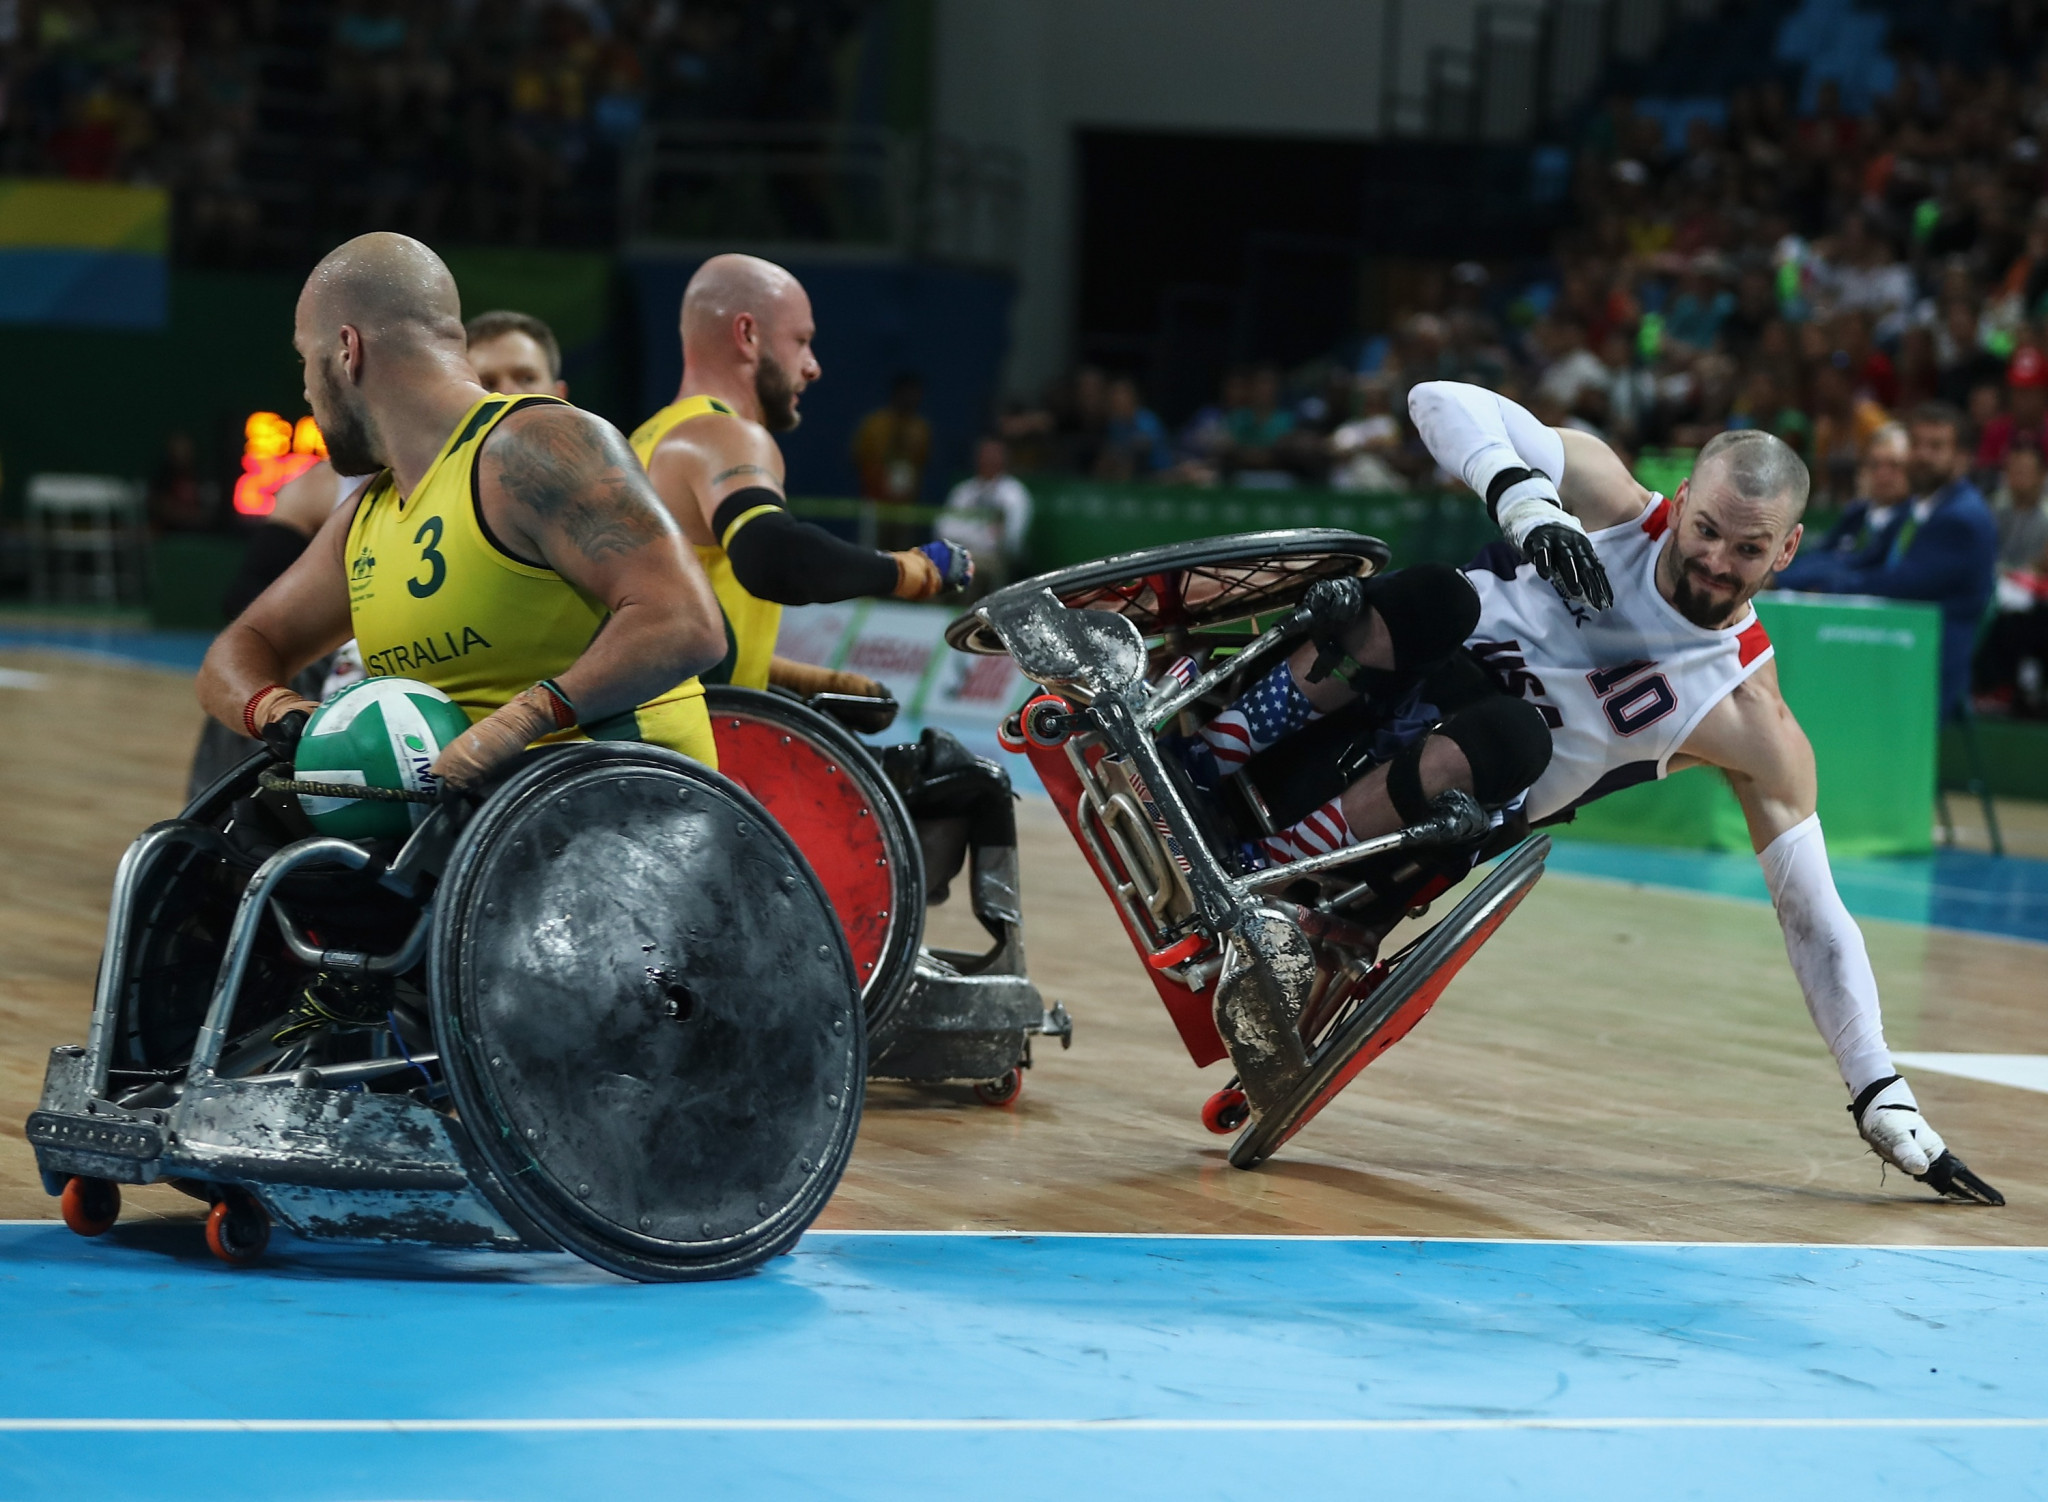 Wheelchair rugby has been an official medal sport at the Paralympic Games since Sydney 2000 ©Getty Images